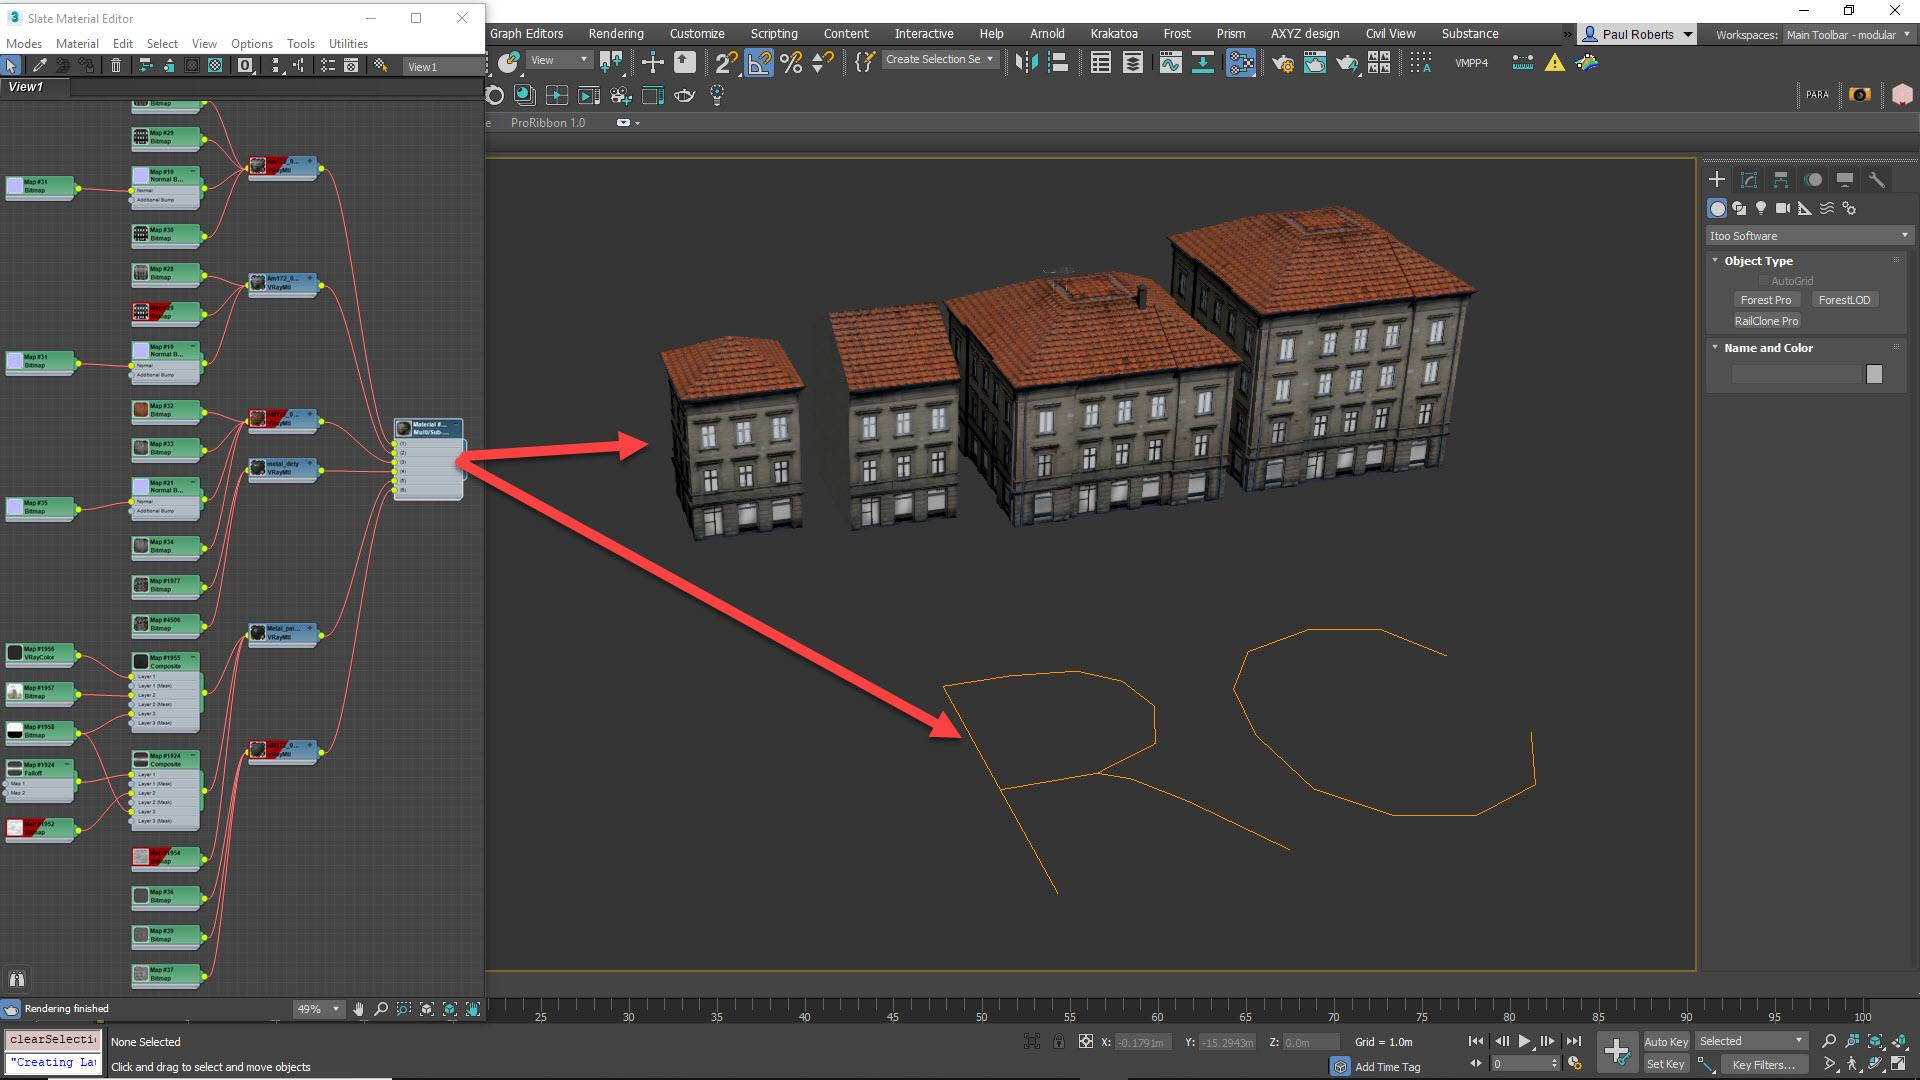 Creating Cities - Step 3